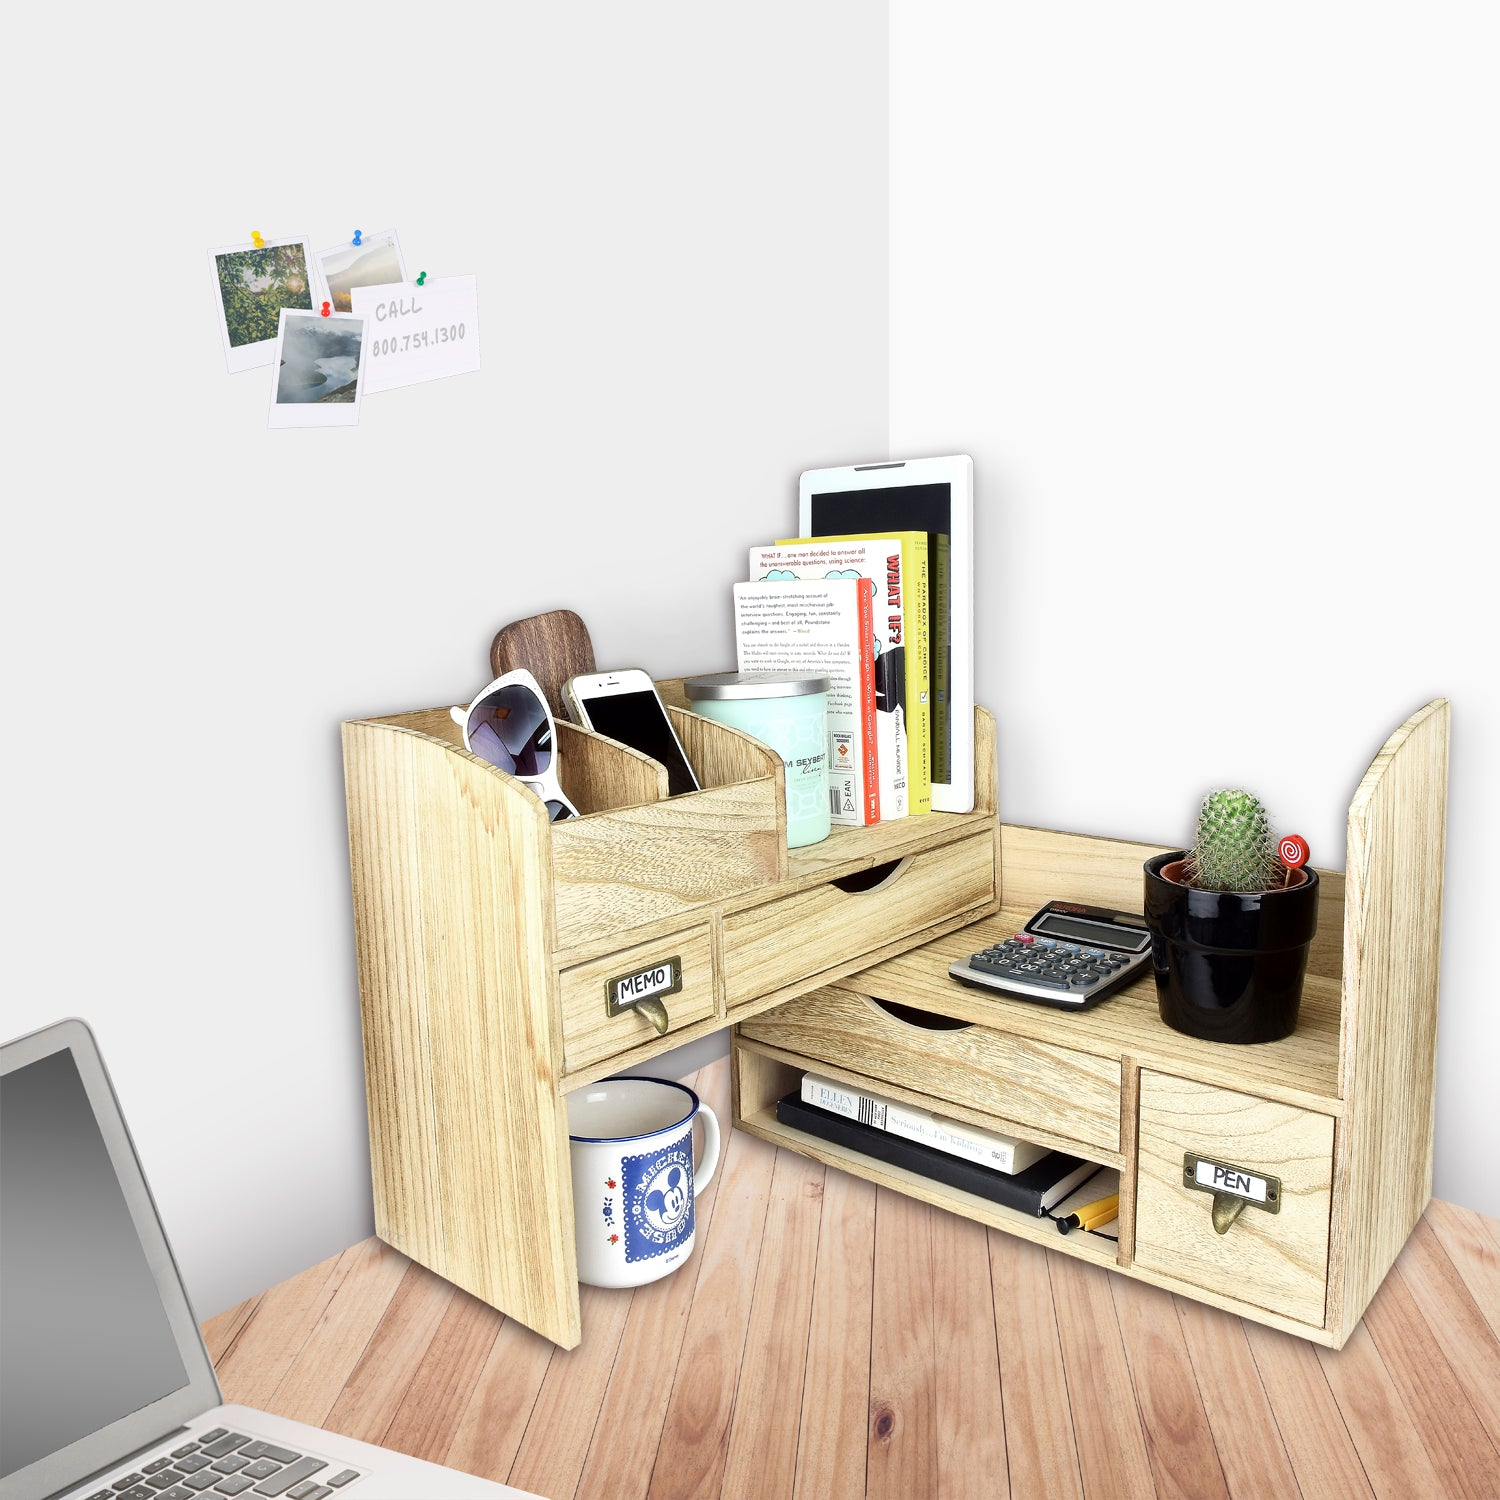 ikee design adjustable wooden desktop organizer